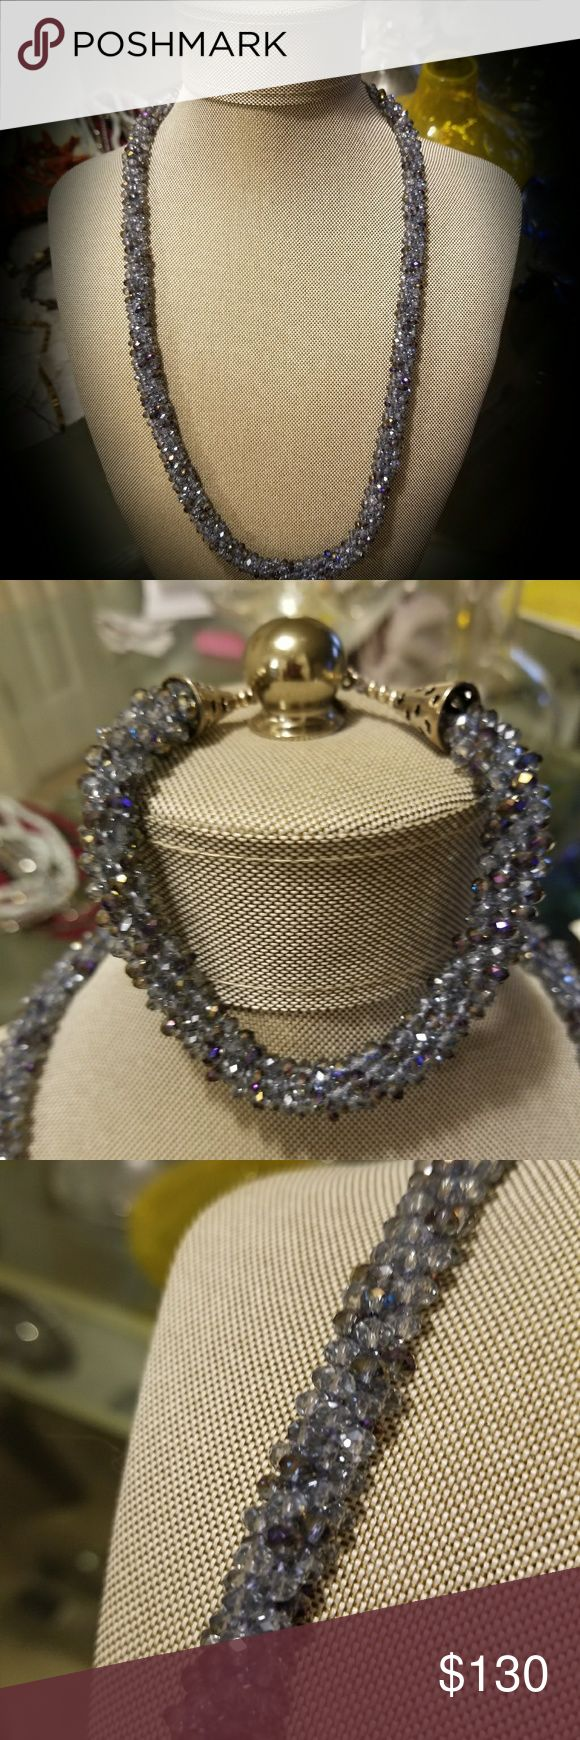 """Handmade Jewelry (matching set) Original Design. Iridescent Blue Czech Crystal beaded Necklace (23.5"""") & matching Bracelet (9.25""""). Hand woven w/ Sterling Silver accents and toggle clasps. Bracelet fits plus size woman. Handmade by @DD_Curves Jewelry Necklaces"""